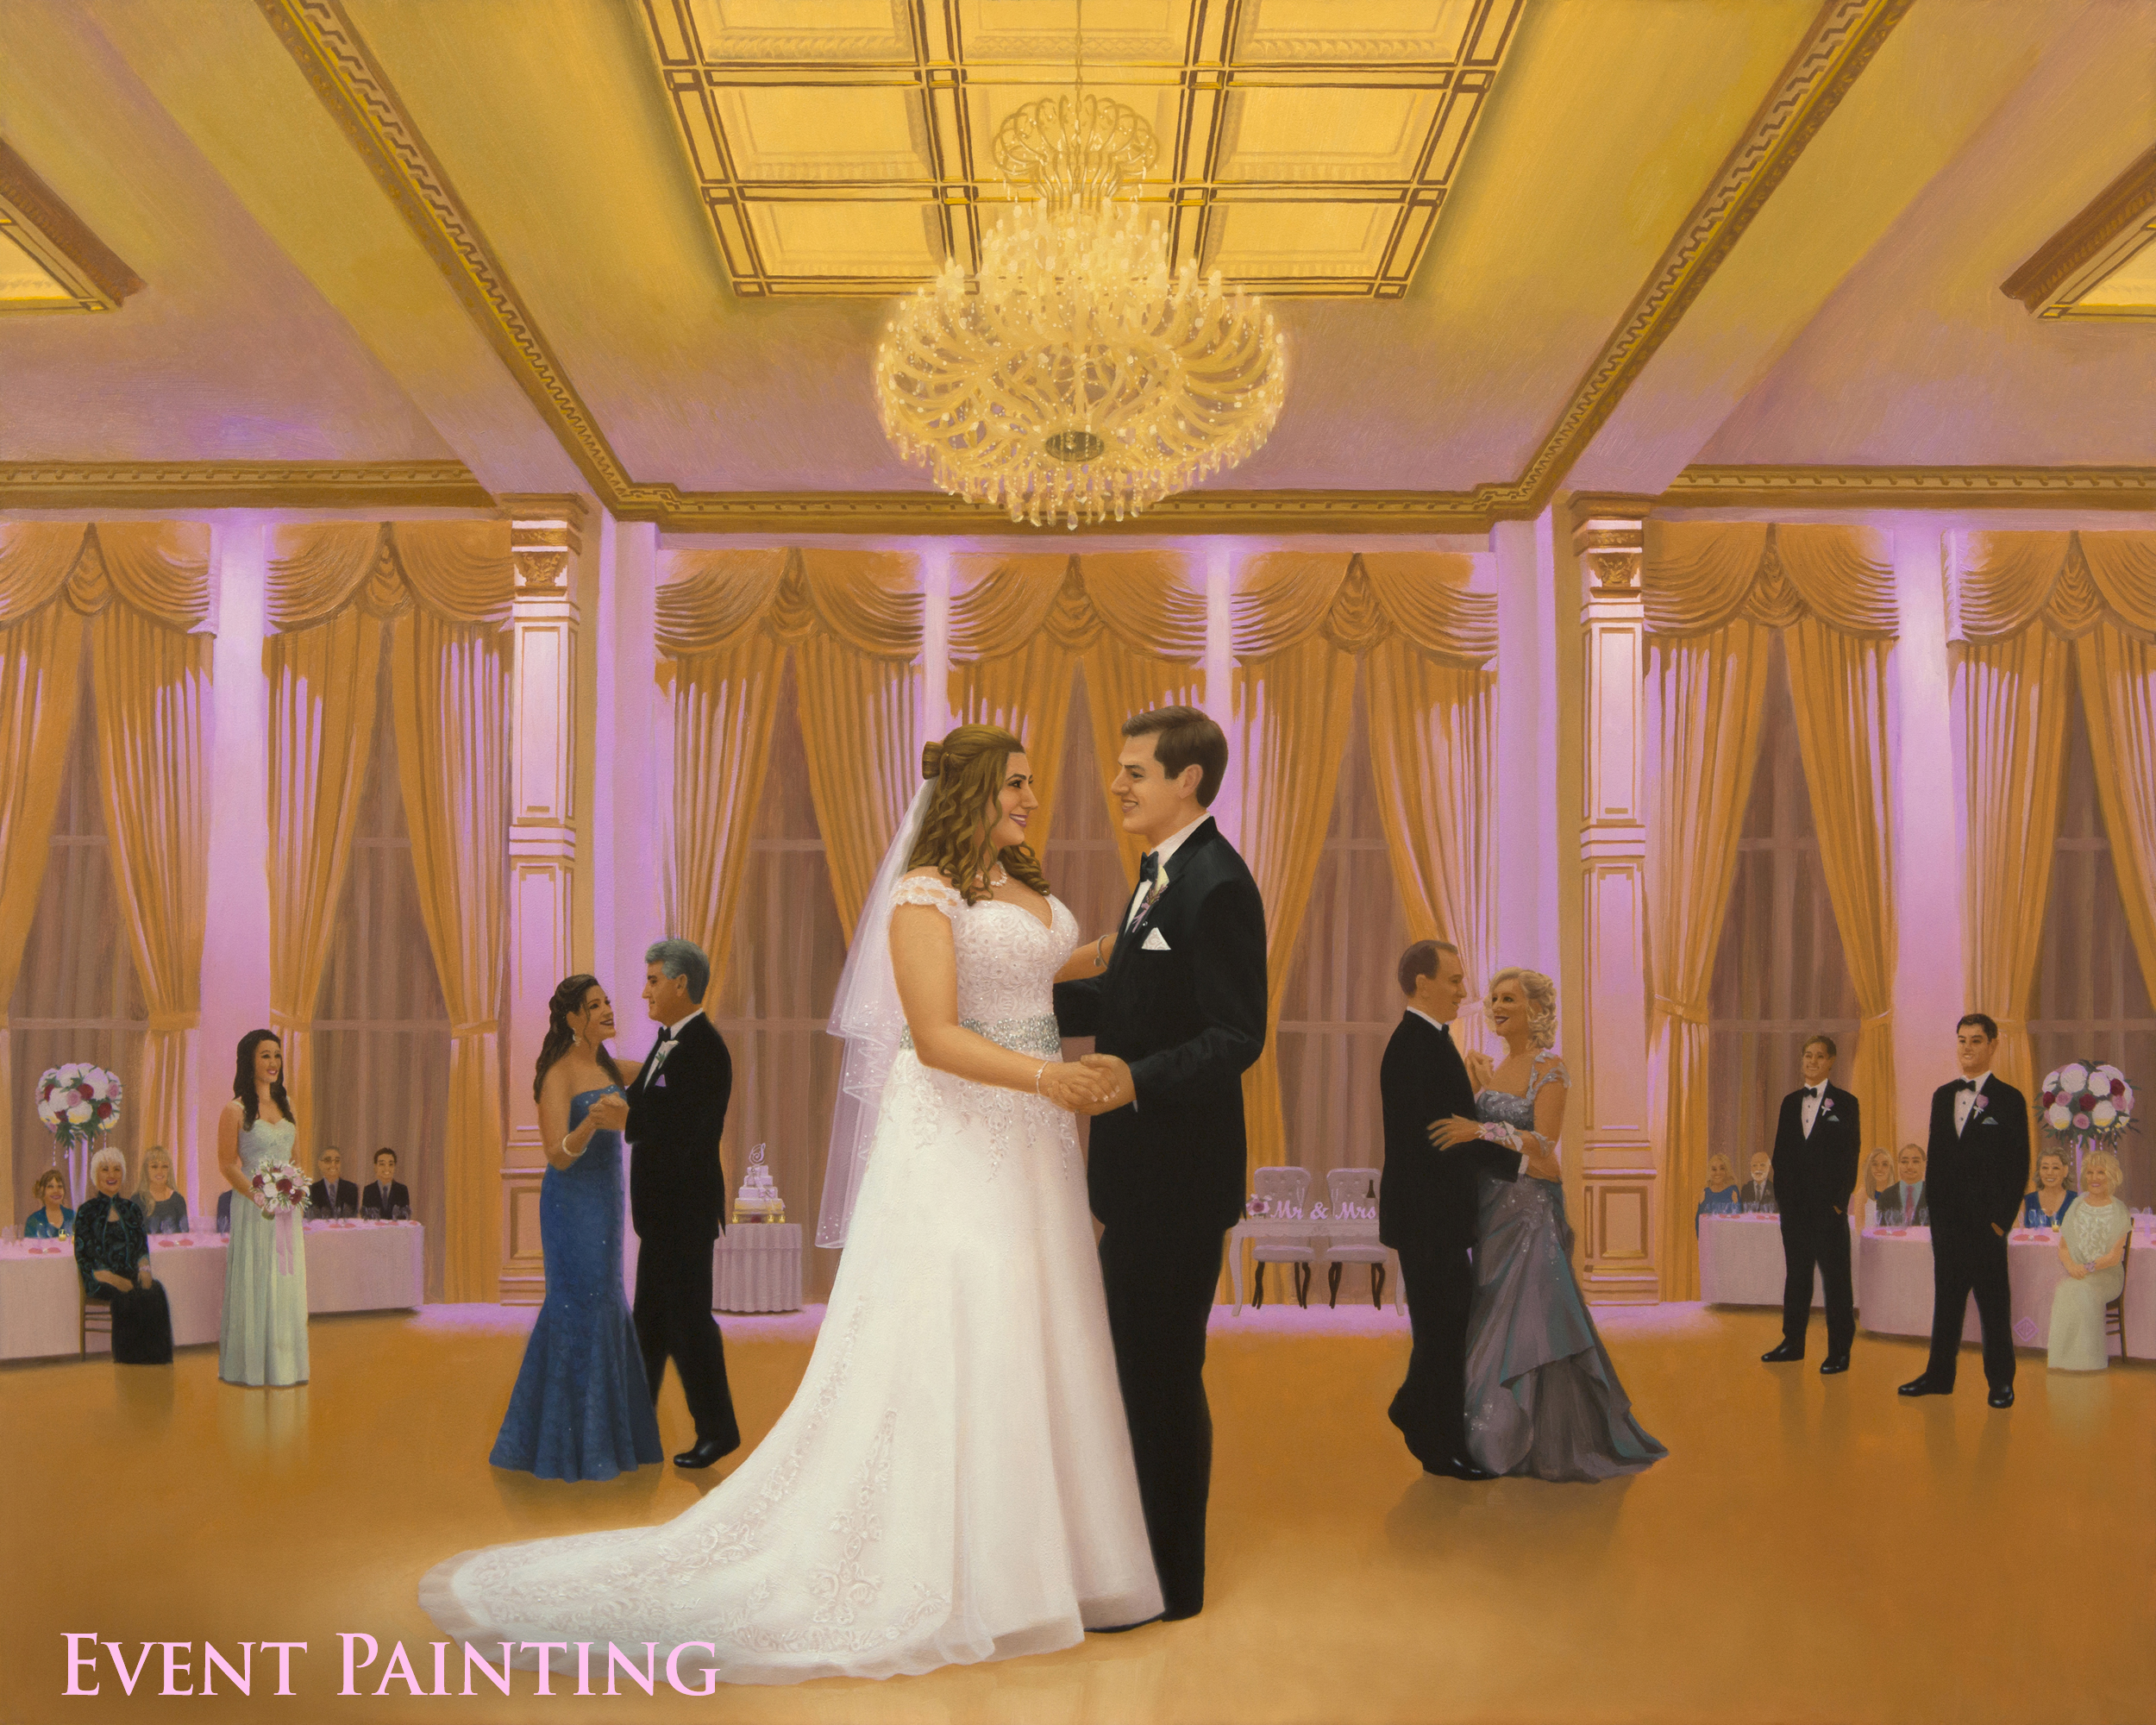 Romantic North Jersey Wedding Reception At The Tides Estate - Live Event Painter Anthony Galati